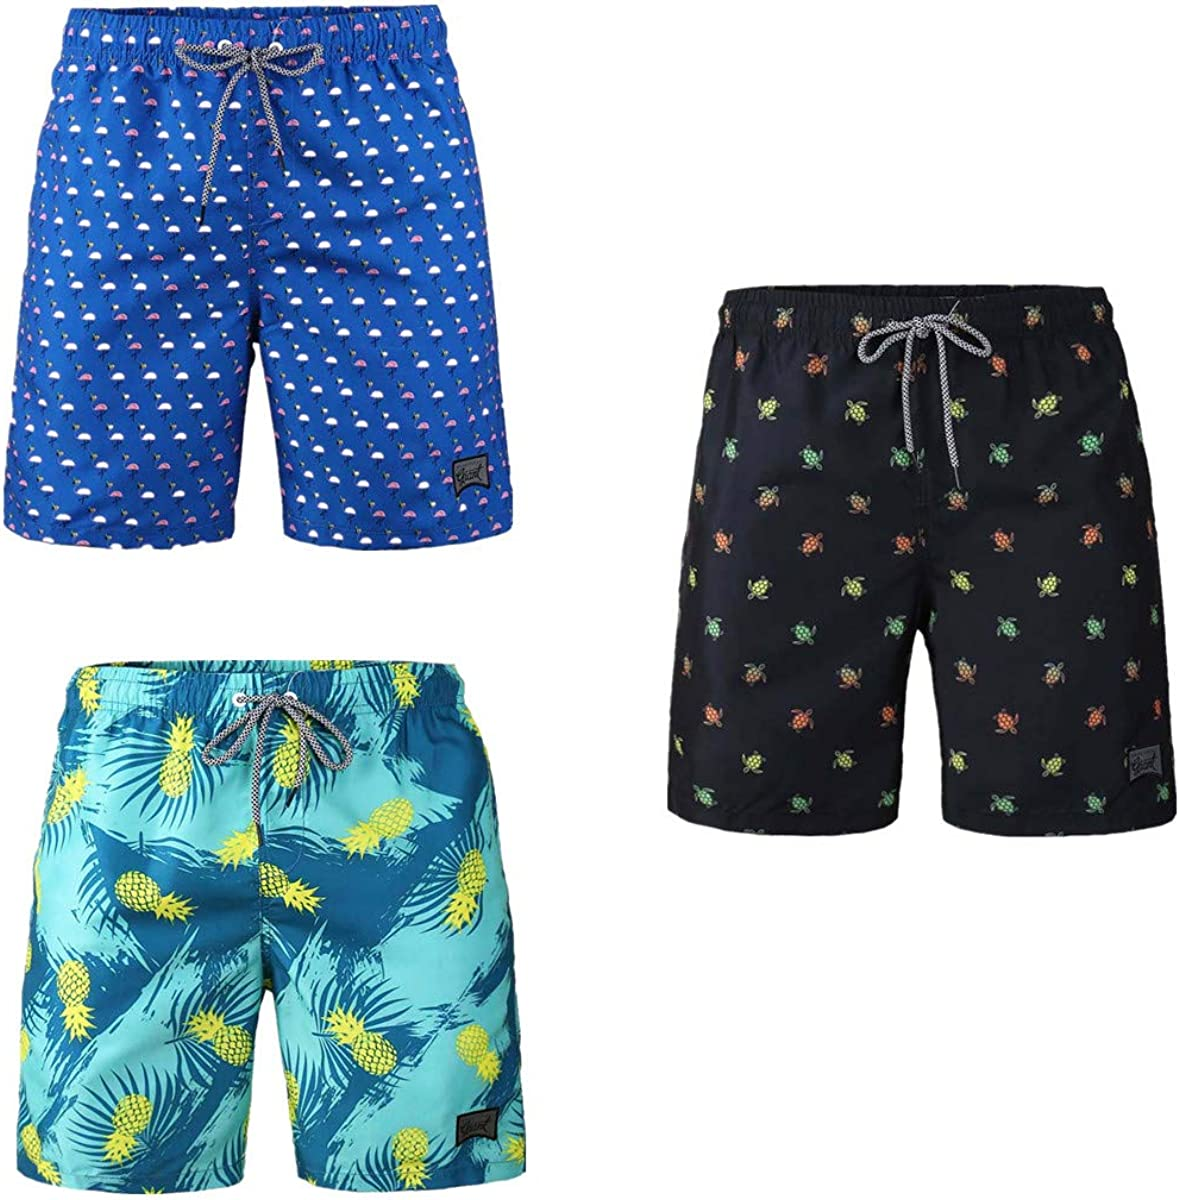 3-Pack Men's Board Shorts Drawstring Vacation Beach for Swimming Loose Quick Dry Swim Pants